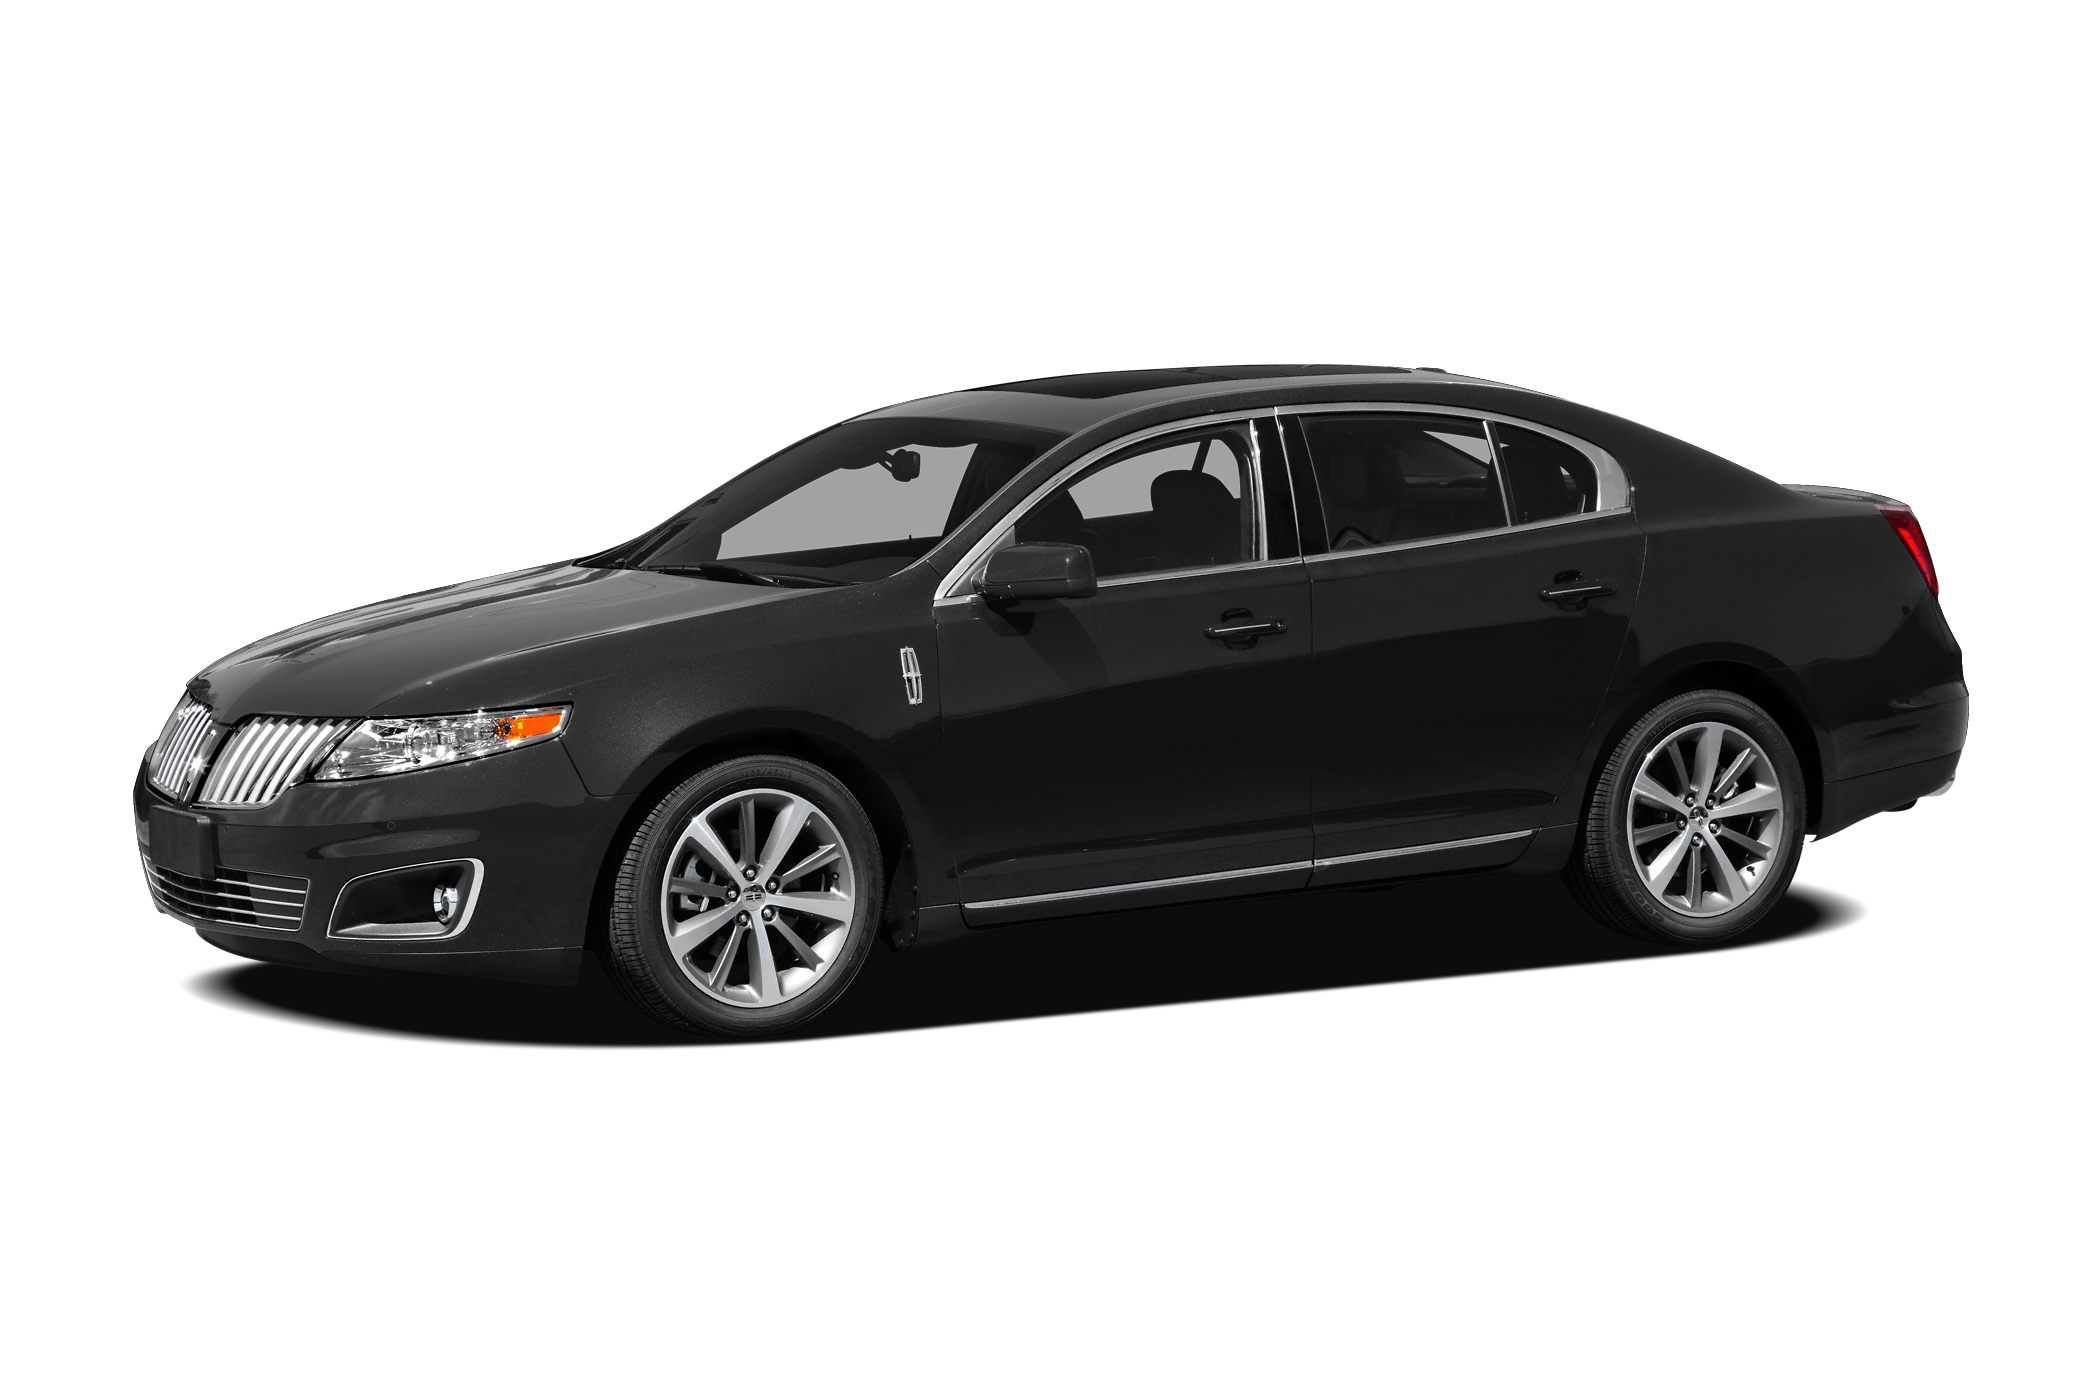 2011 Lincoln MKS EcoBoost Sedan for sale in Seattle for $22,995 with 81,128 miles.